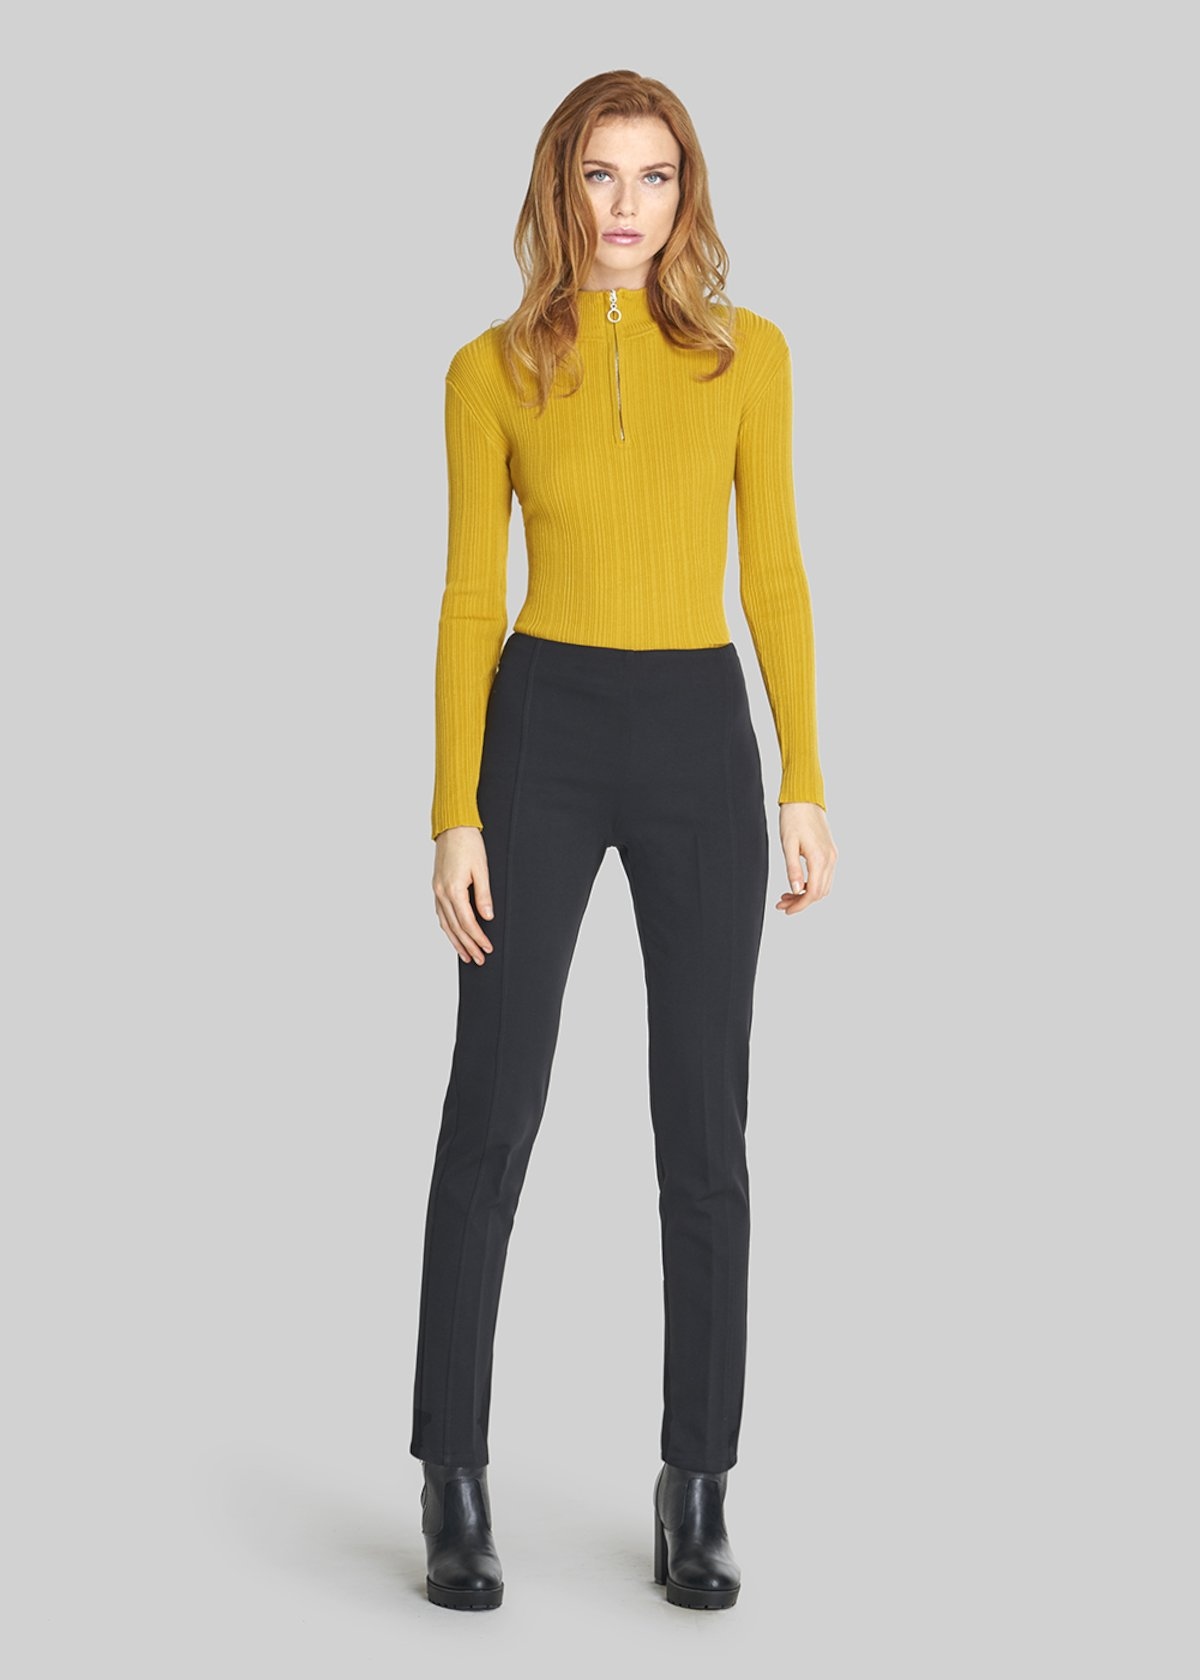 Scherma jeggings trousers carrè straight cut